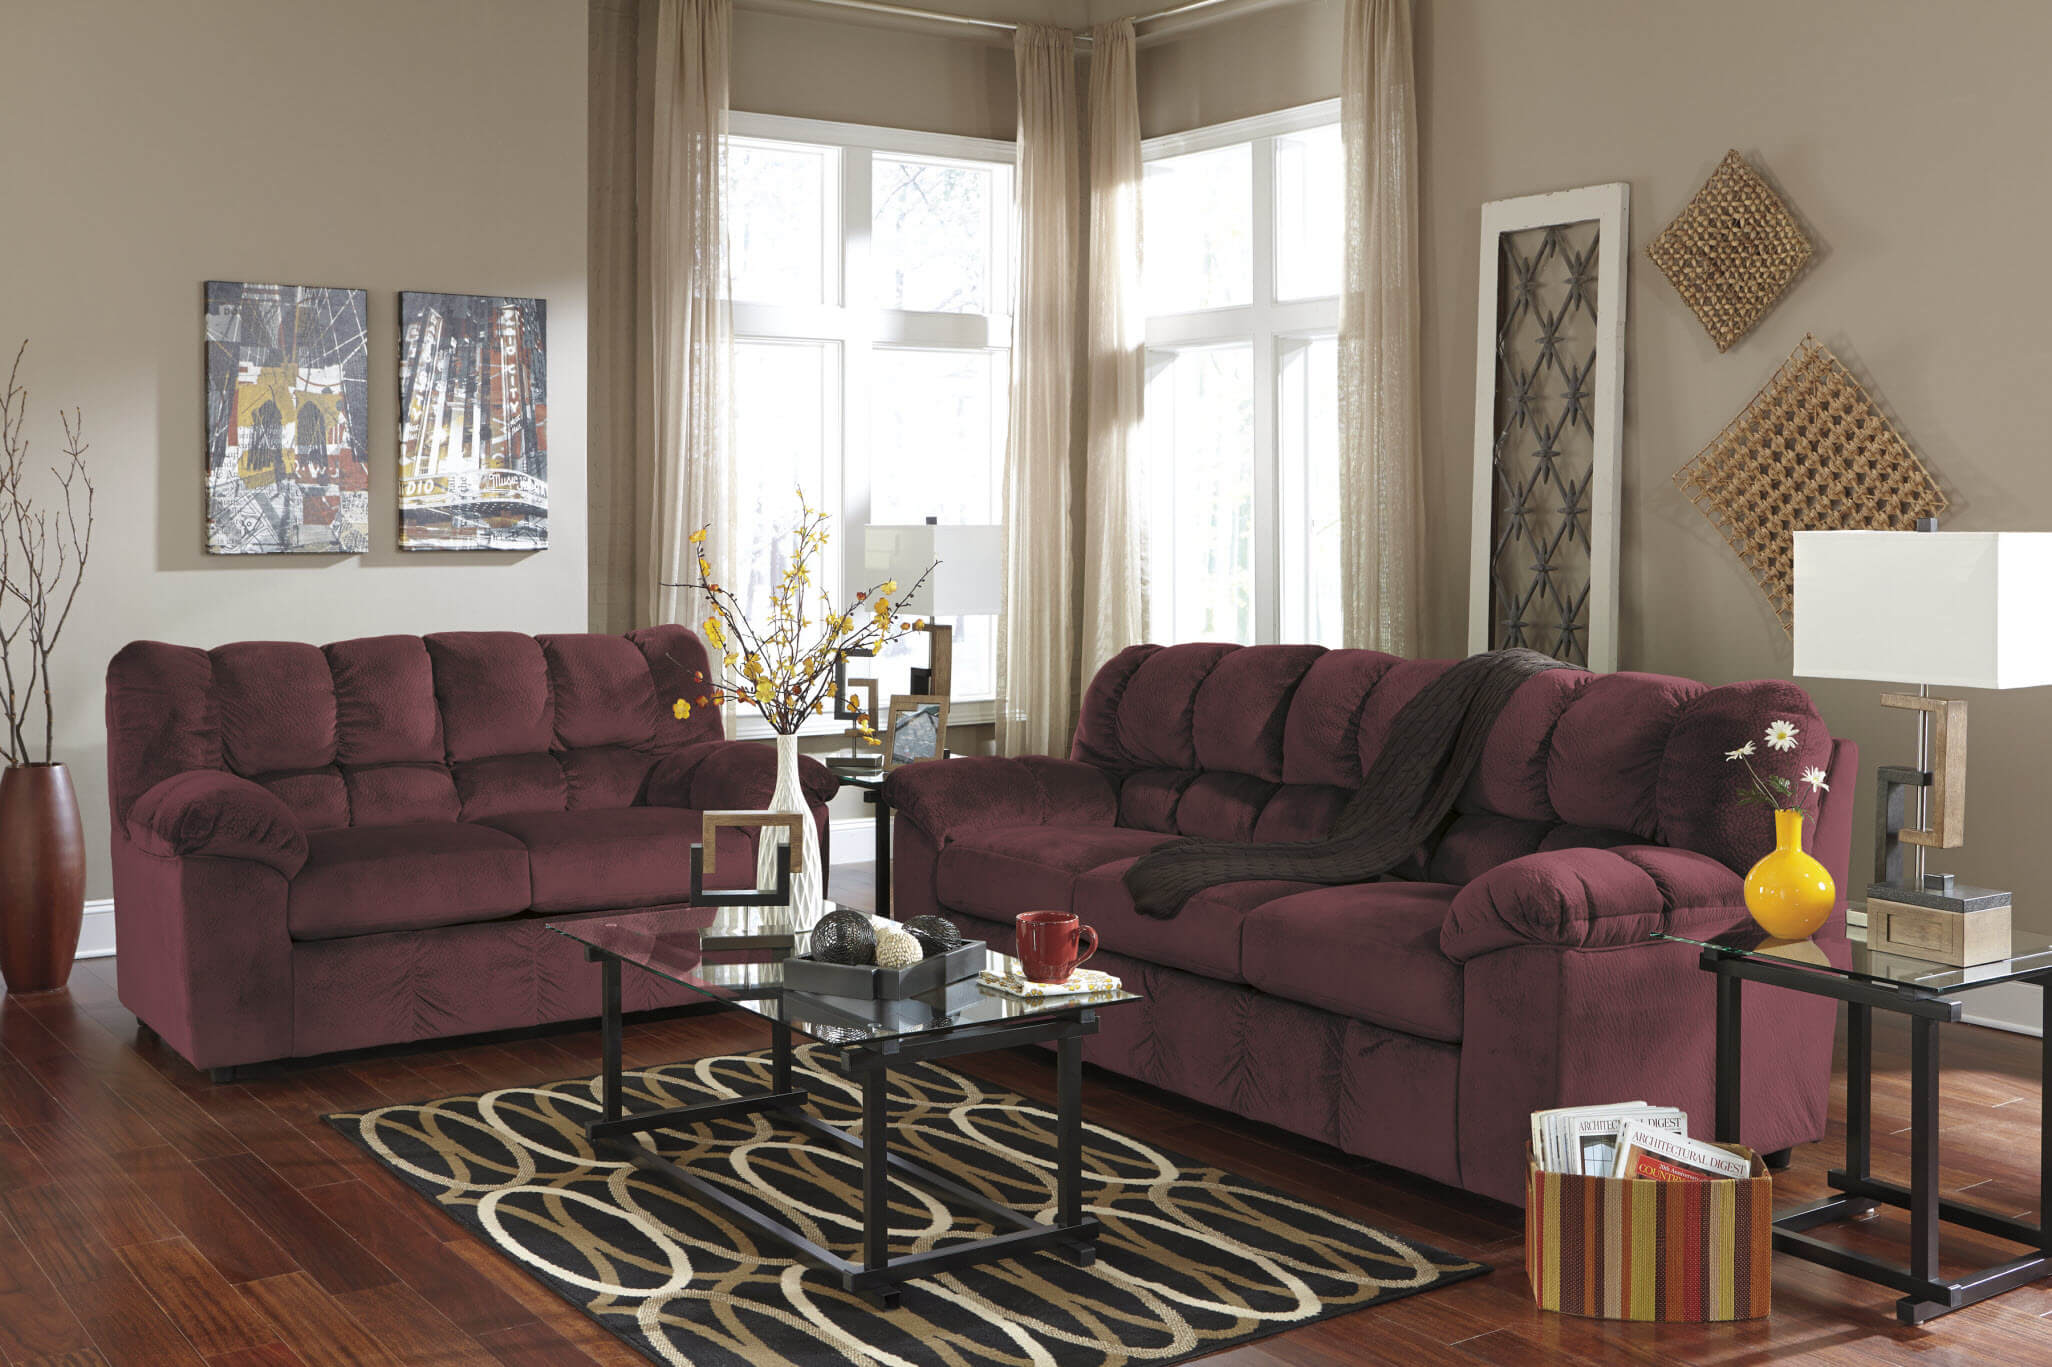 room burgundy schemes home ideas living decoration interior amazing collection to color